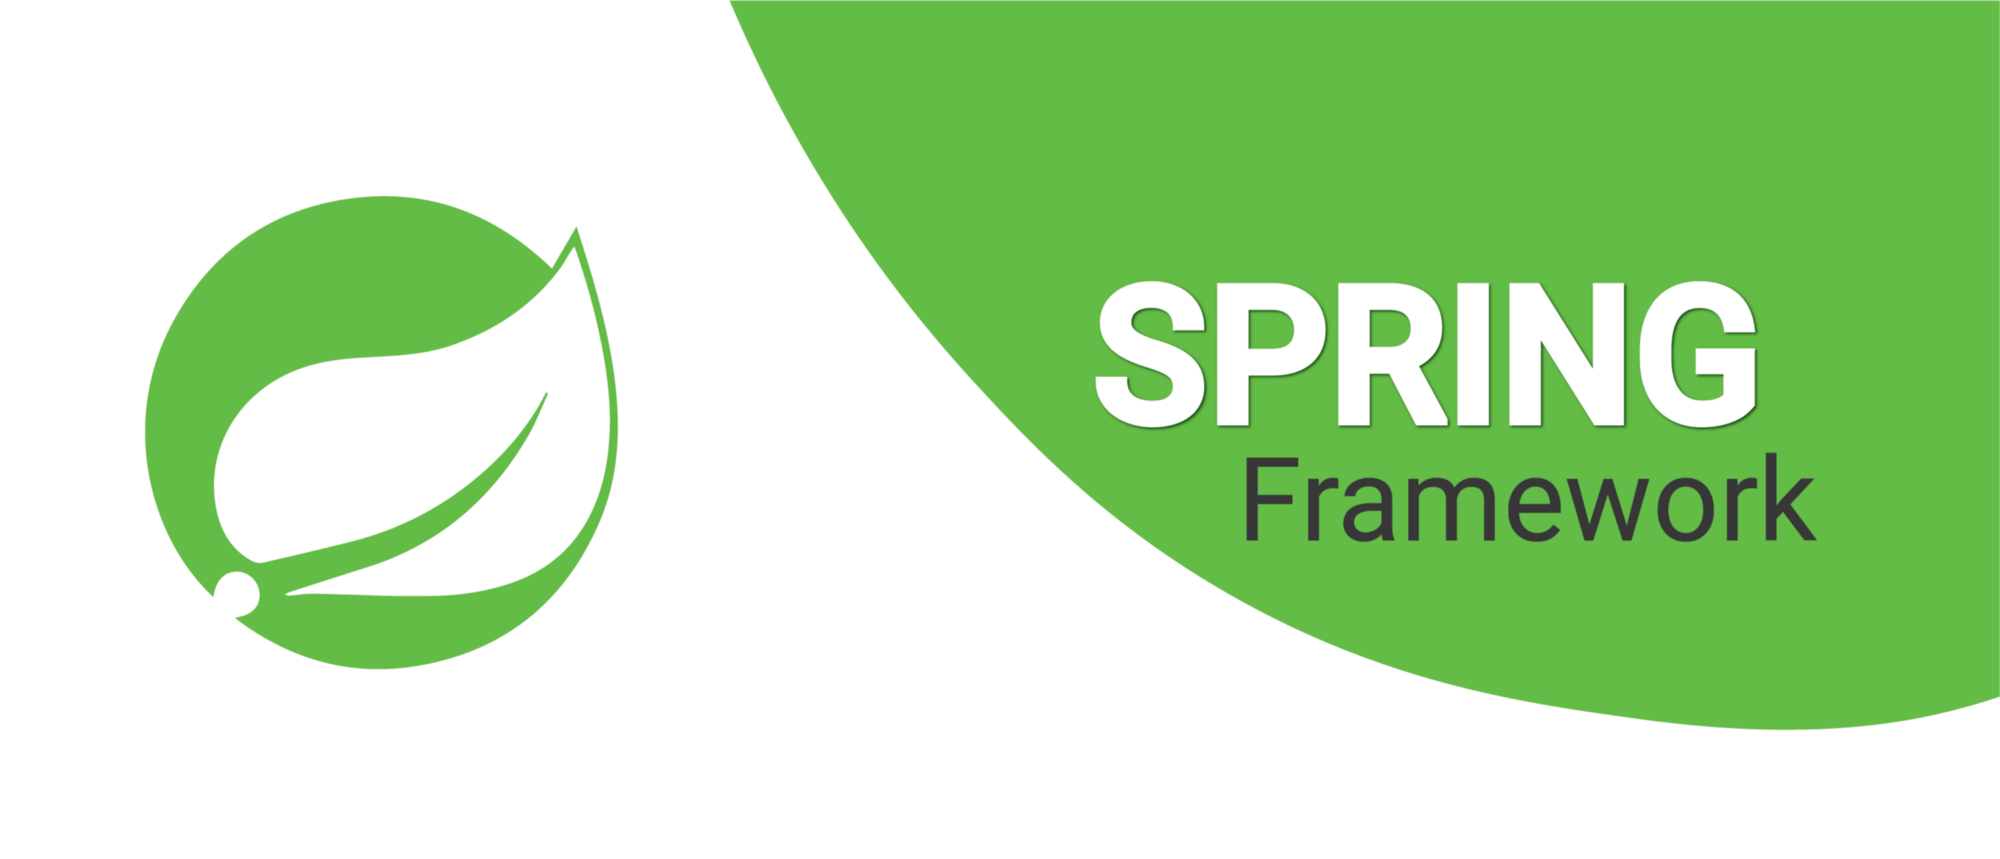 Top Tutorials To Learn Spring Framework For The Java Application